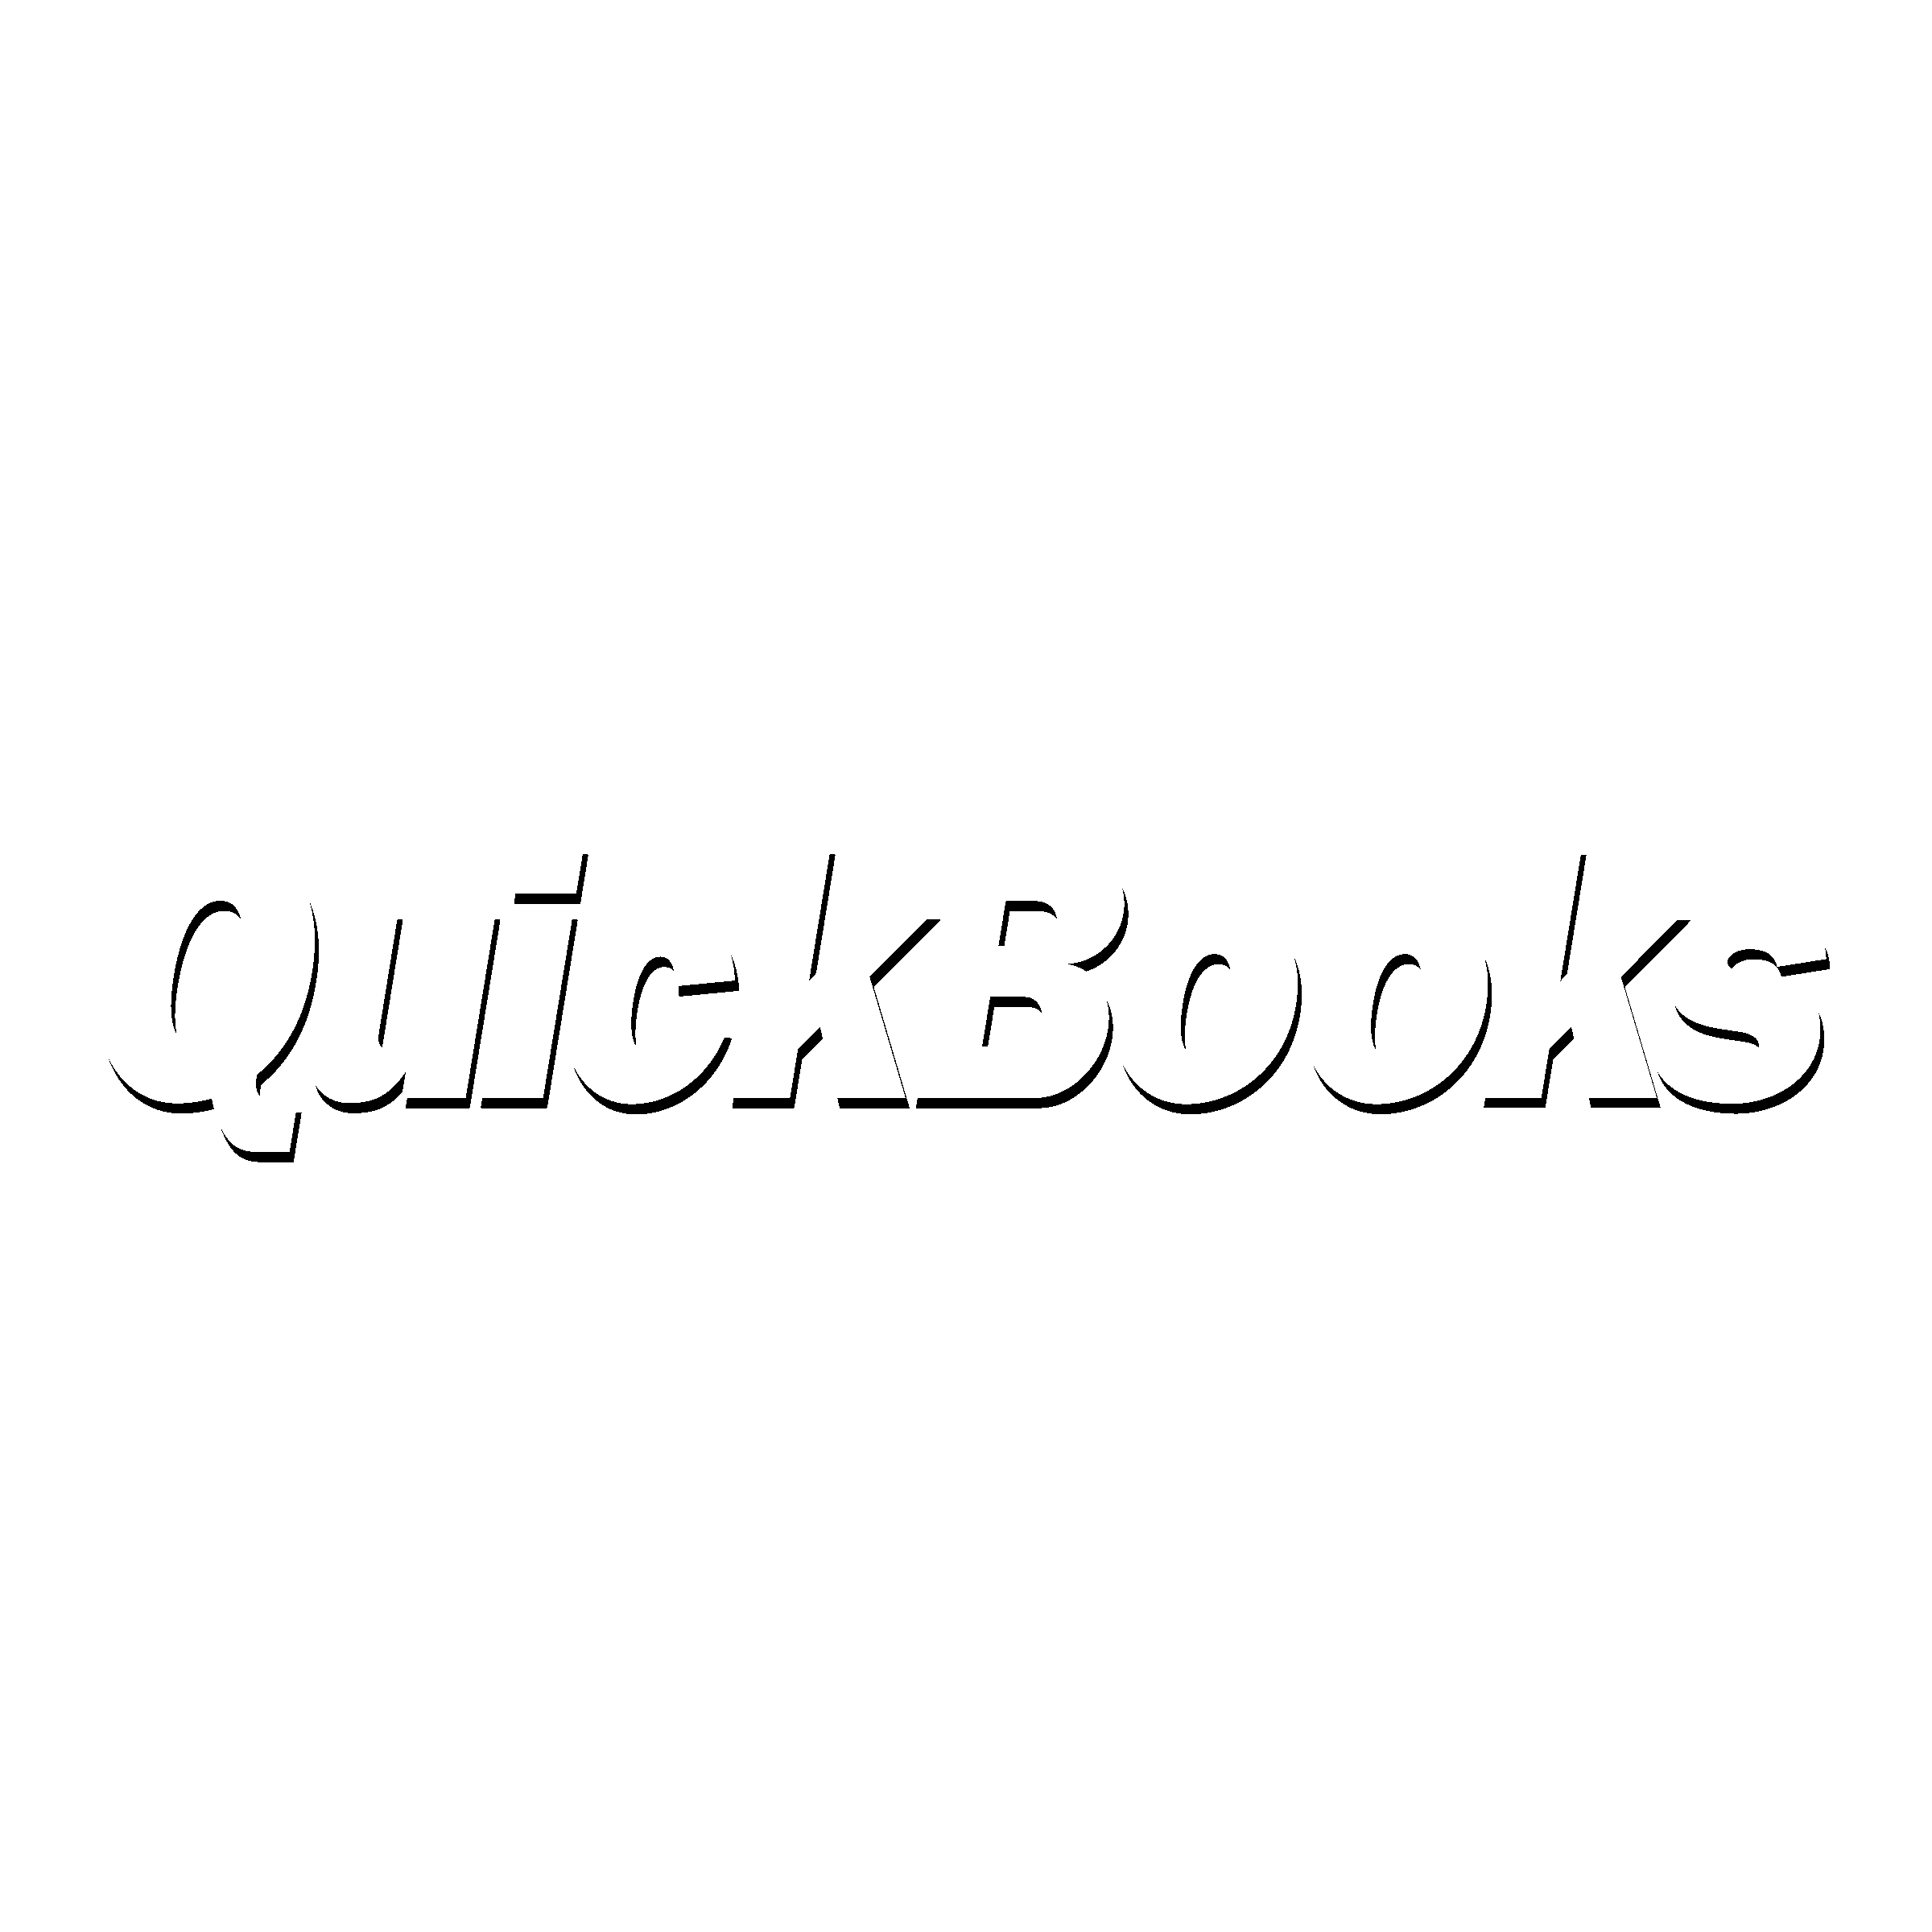 QuickBooks Logo PNG Transparent & SVG Vector - Freebie Supply